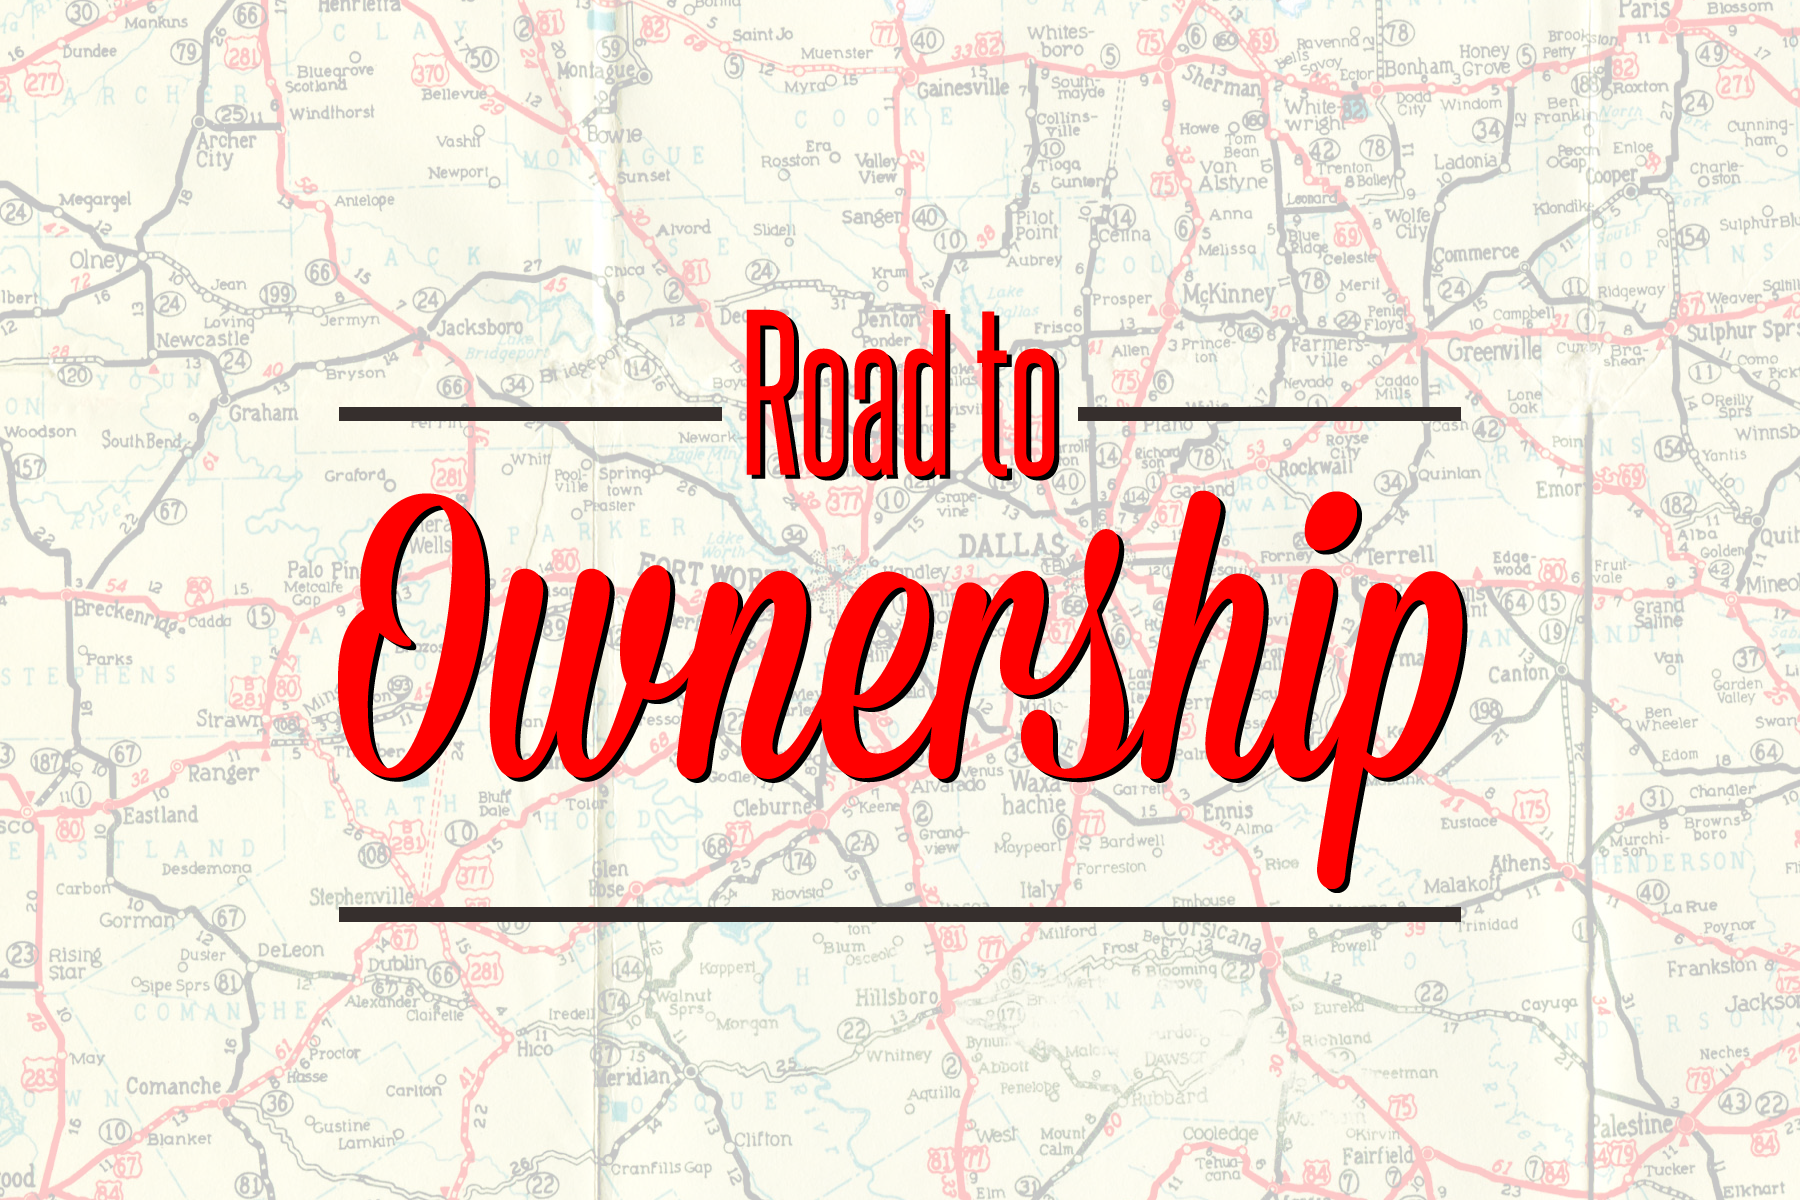 Road to ownership